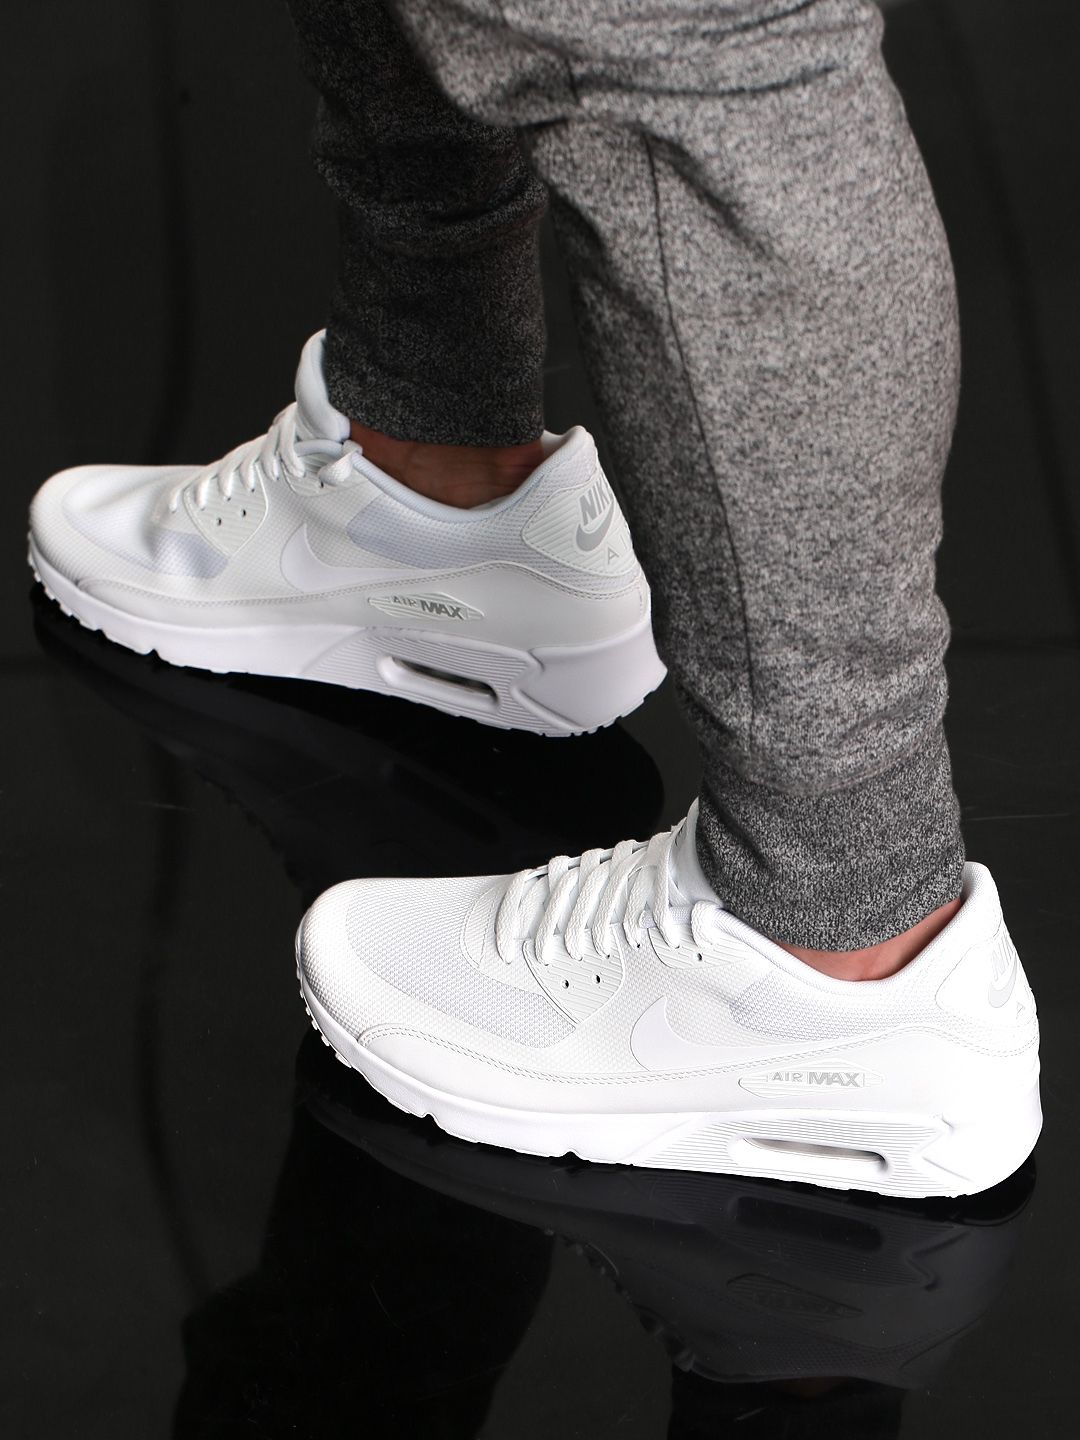 b5e63e1f15 Buy Nike Men White Air Max 90 Ultra 2.0 Essential Sneakers - Casual ...